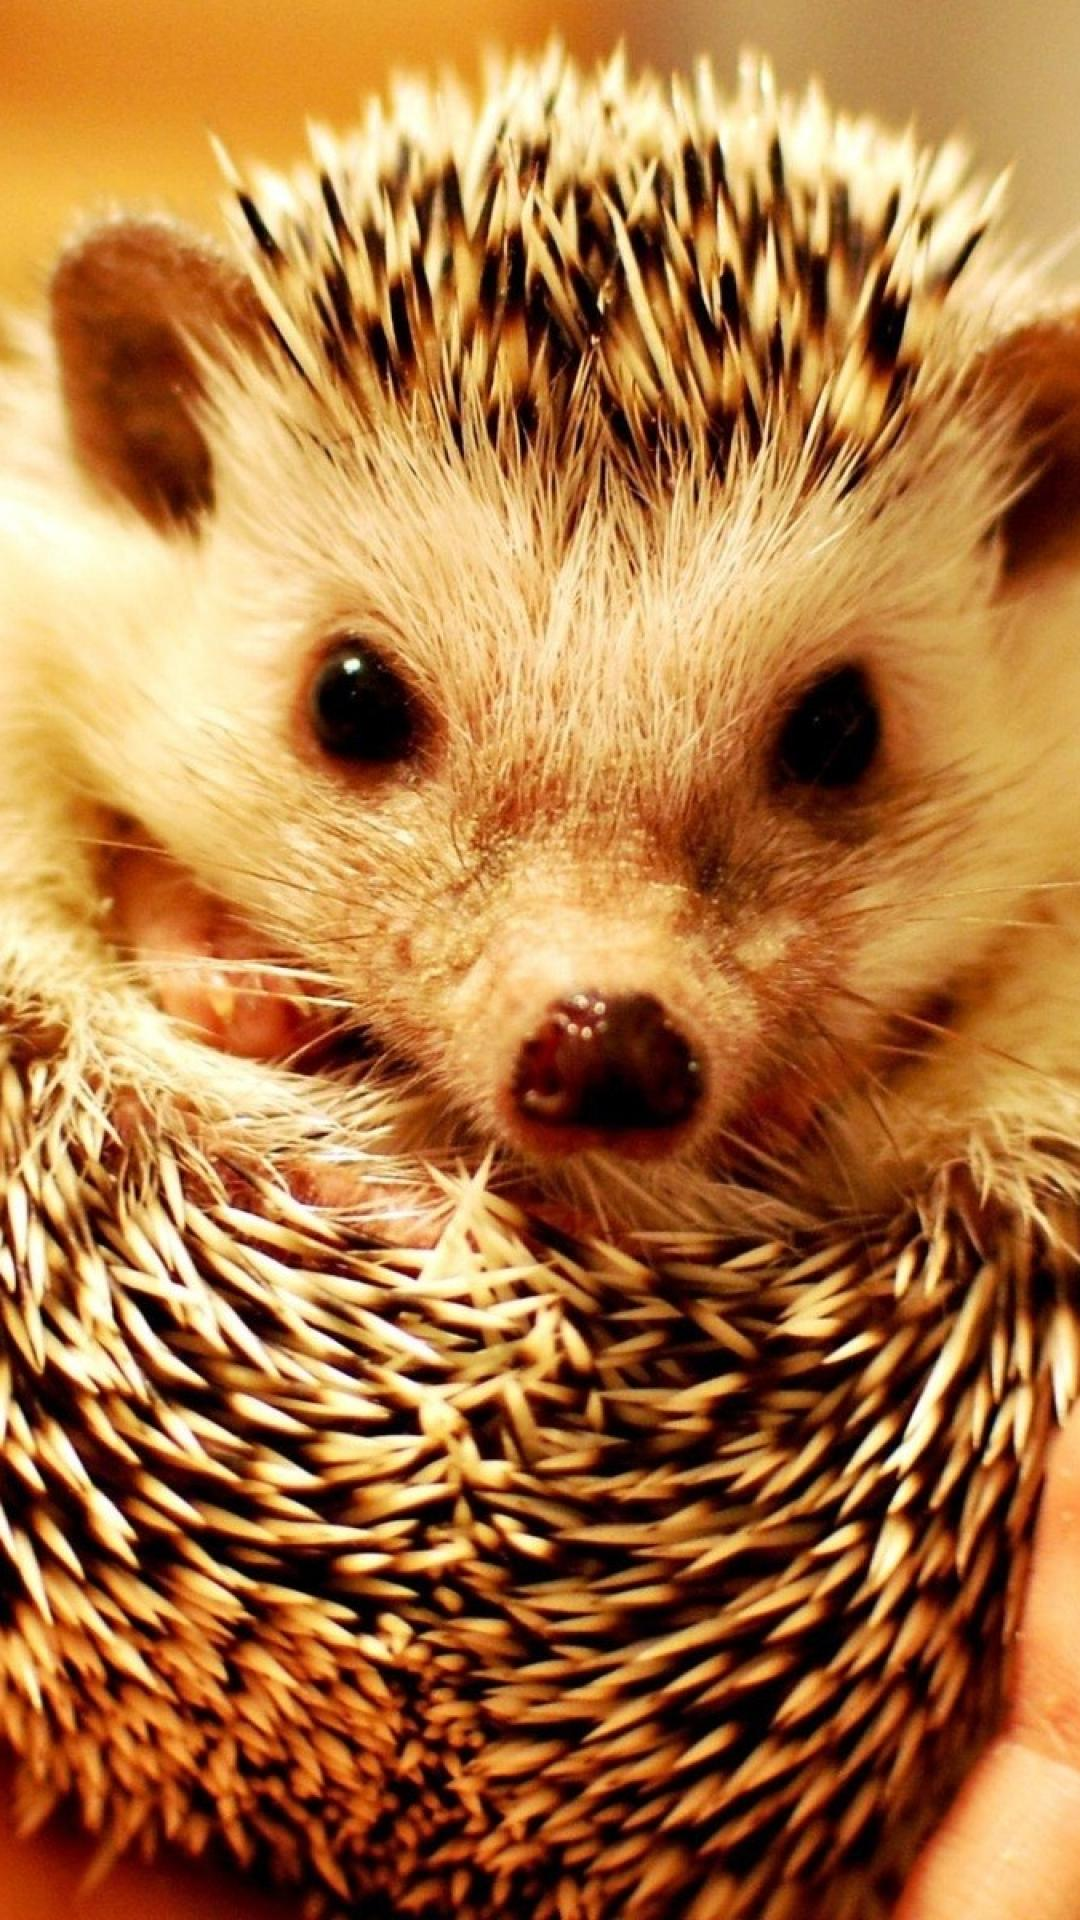 Very Nice Wallpaper For Desktop Cute Hedgehog Wallpape...